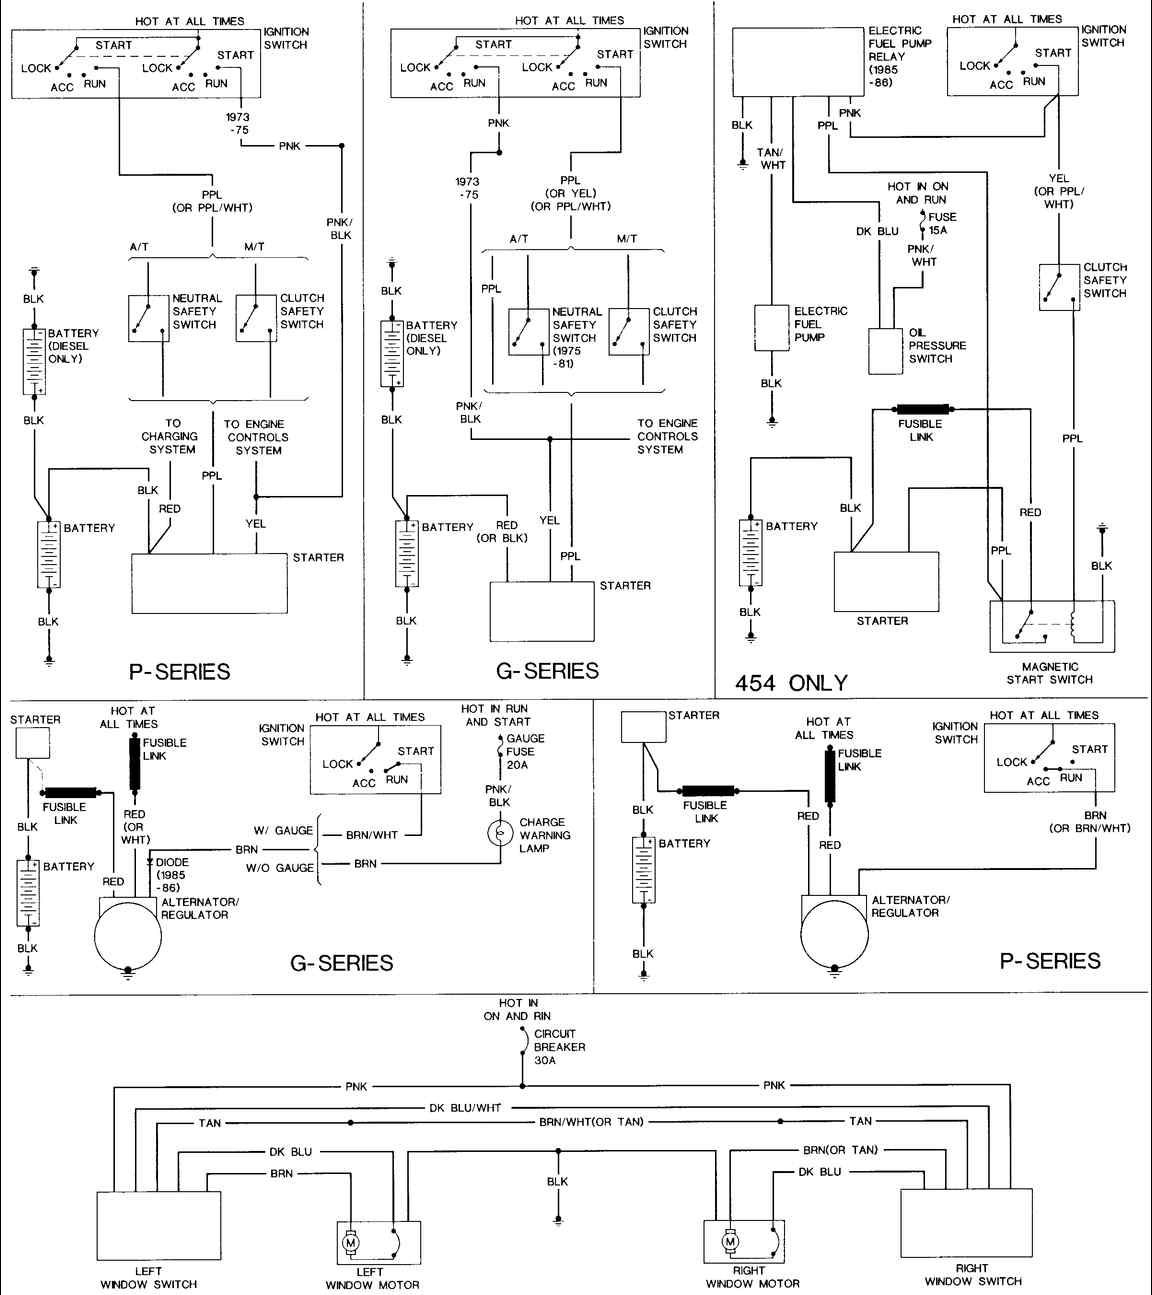 0c73623a181dc376dbb4777e2029d285 85 chevy truck wiring diagram 85 chevy van the steering column 1989 Camaro Steering Column Diagram at bakdesigns.co